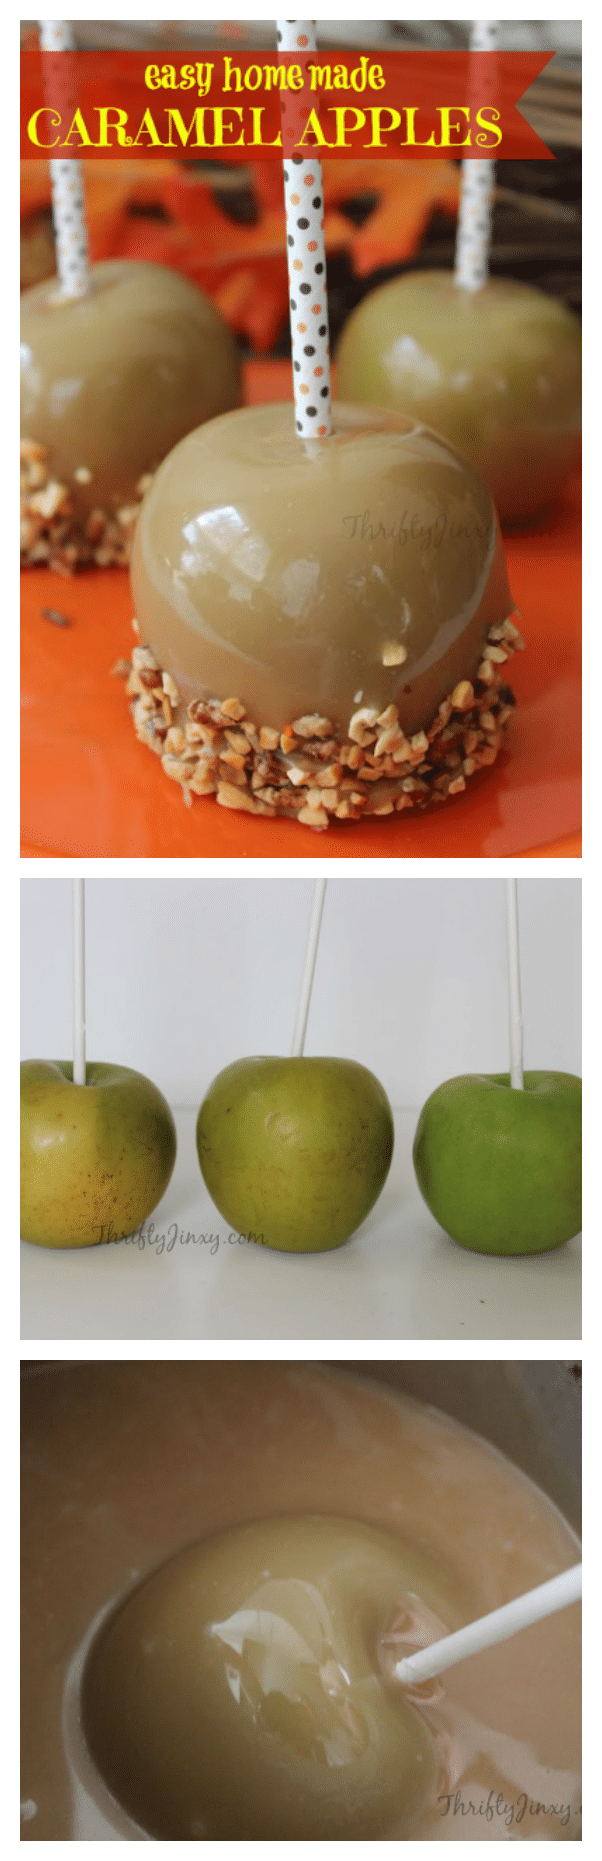 Make delicious fall treats with this Easy Homemade Caramel Apple Recipe that is extra creamy and ready for your favorite toppings like peanuts or sprinkles.